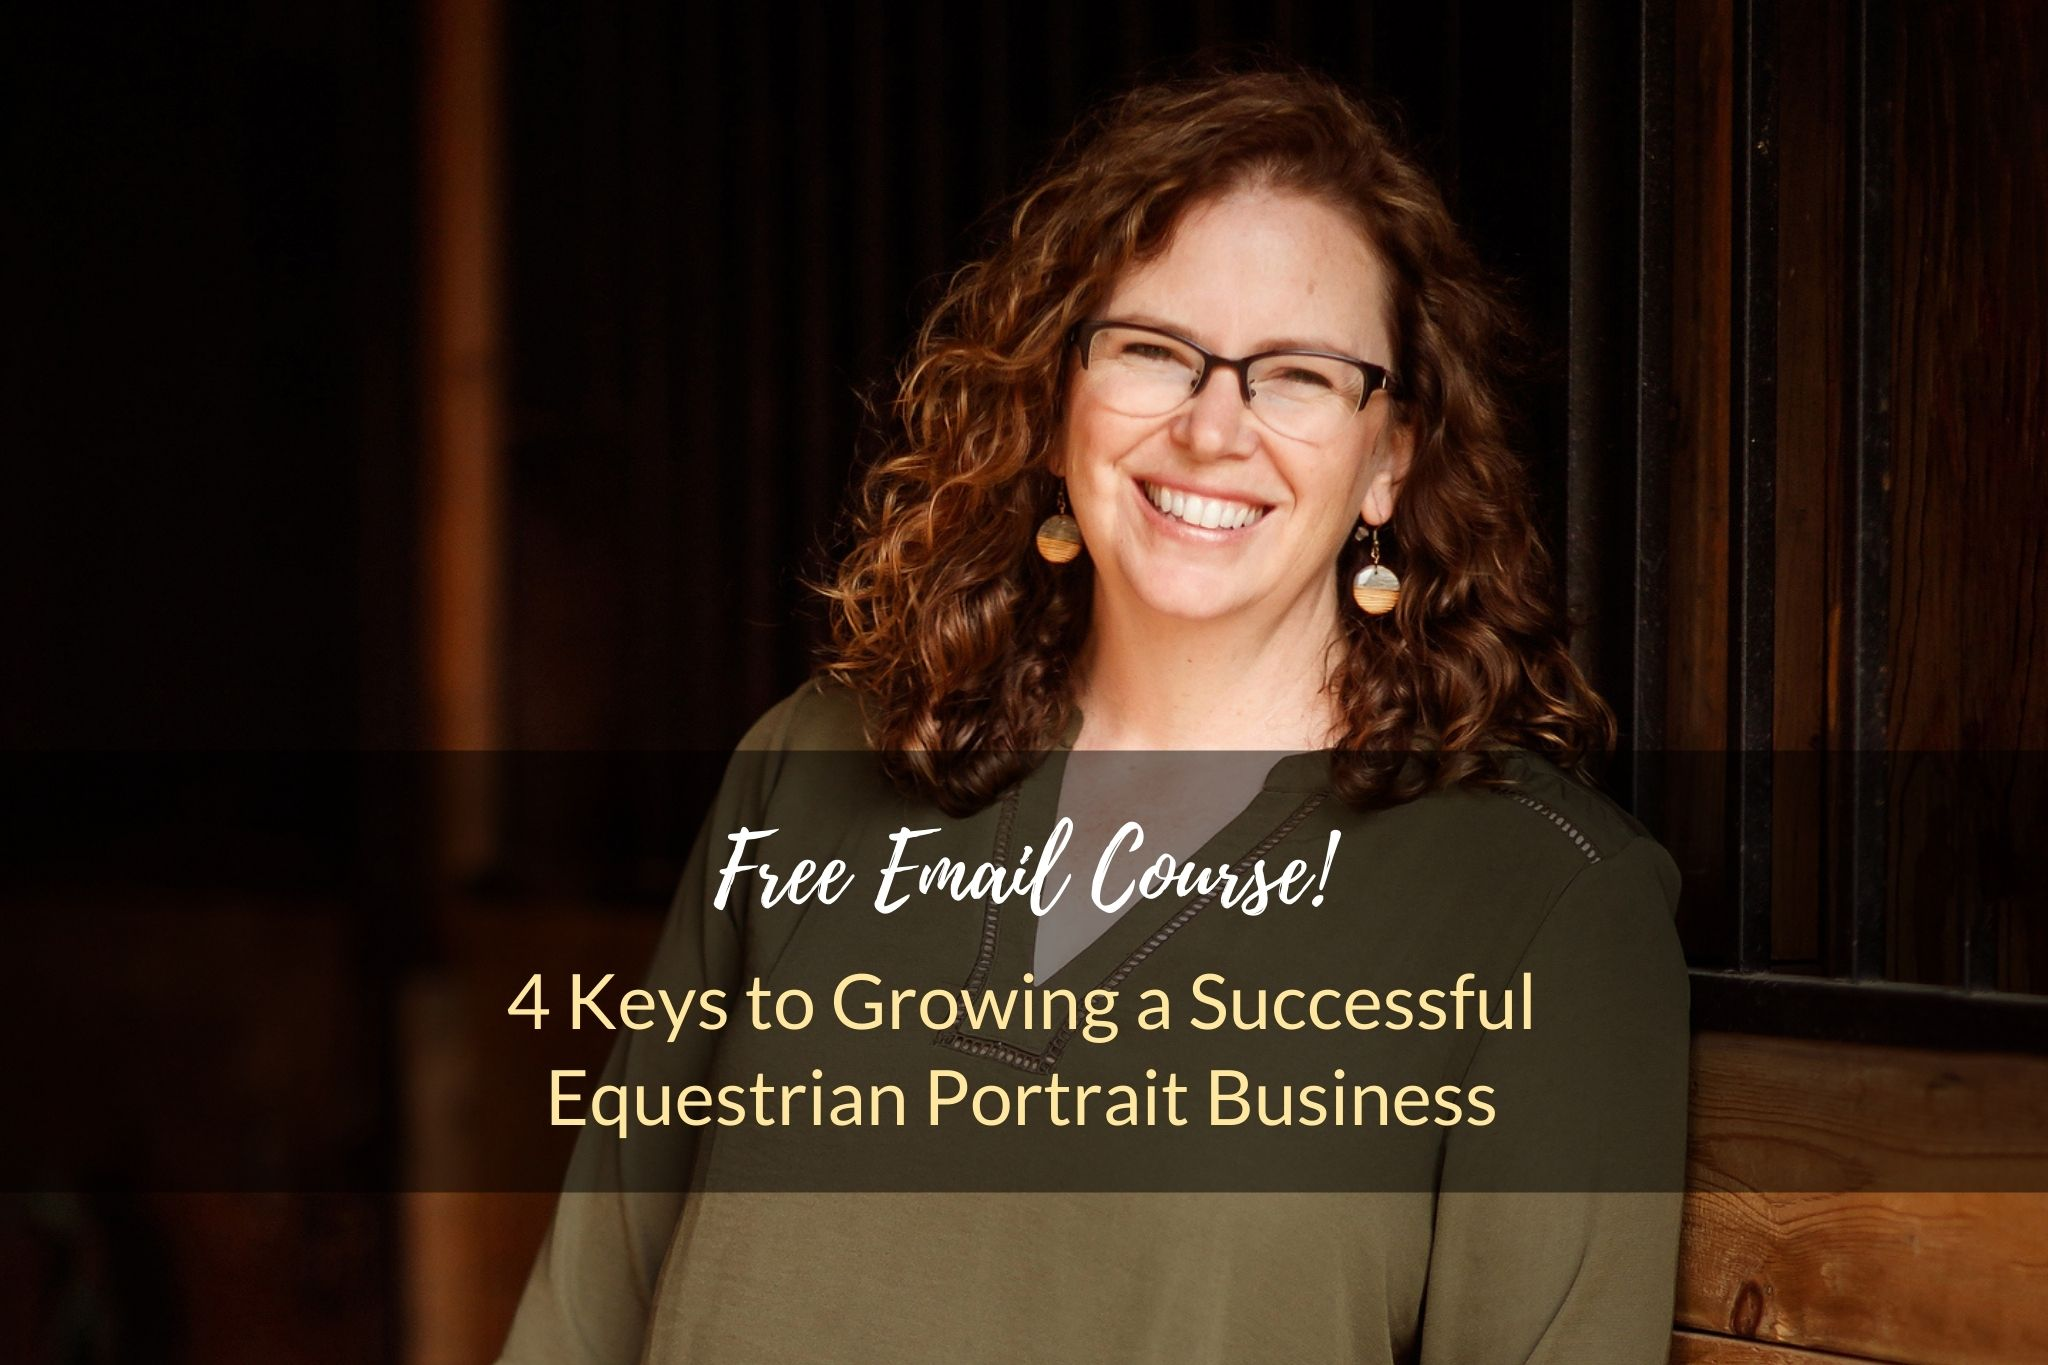 Free Email Course! Four Keys to Growing a Successful Equestrian Portrait Business